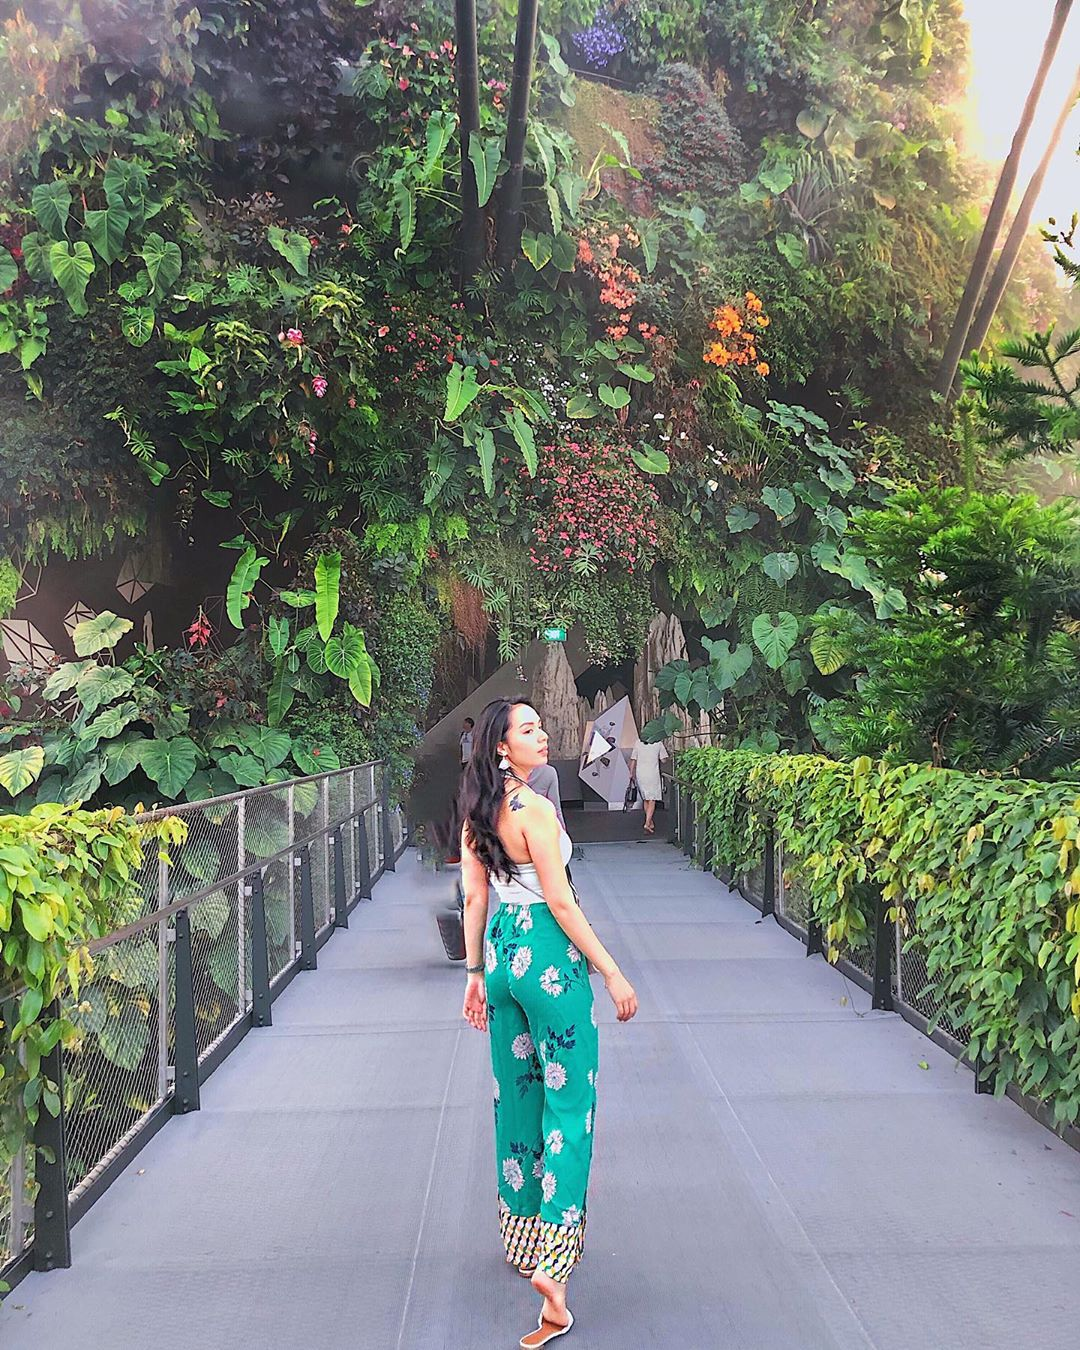 Inspirasi Wisata Traveling Singapore Garden by the Bay Cloud Forest 4